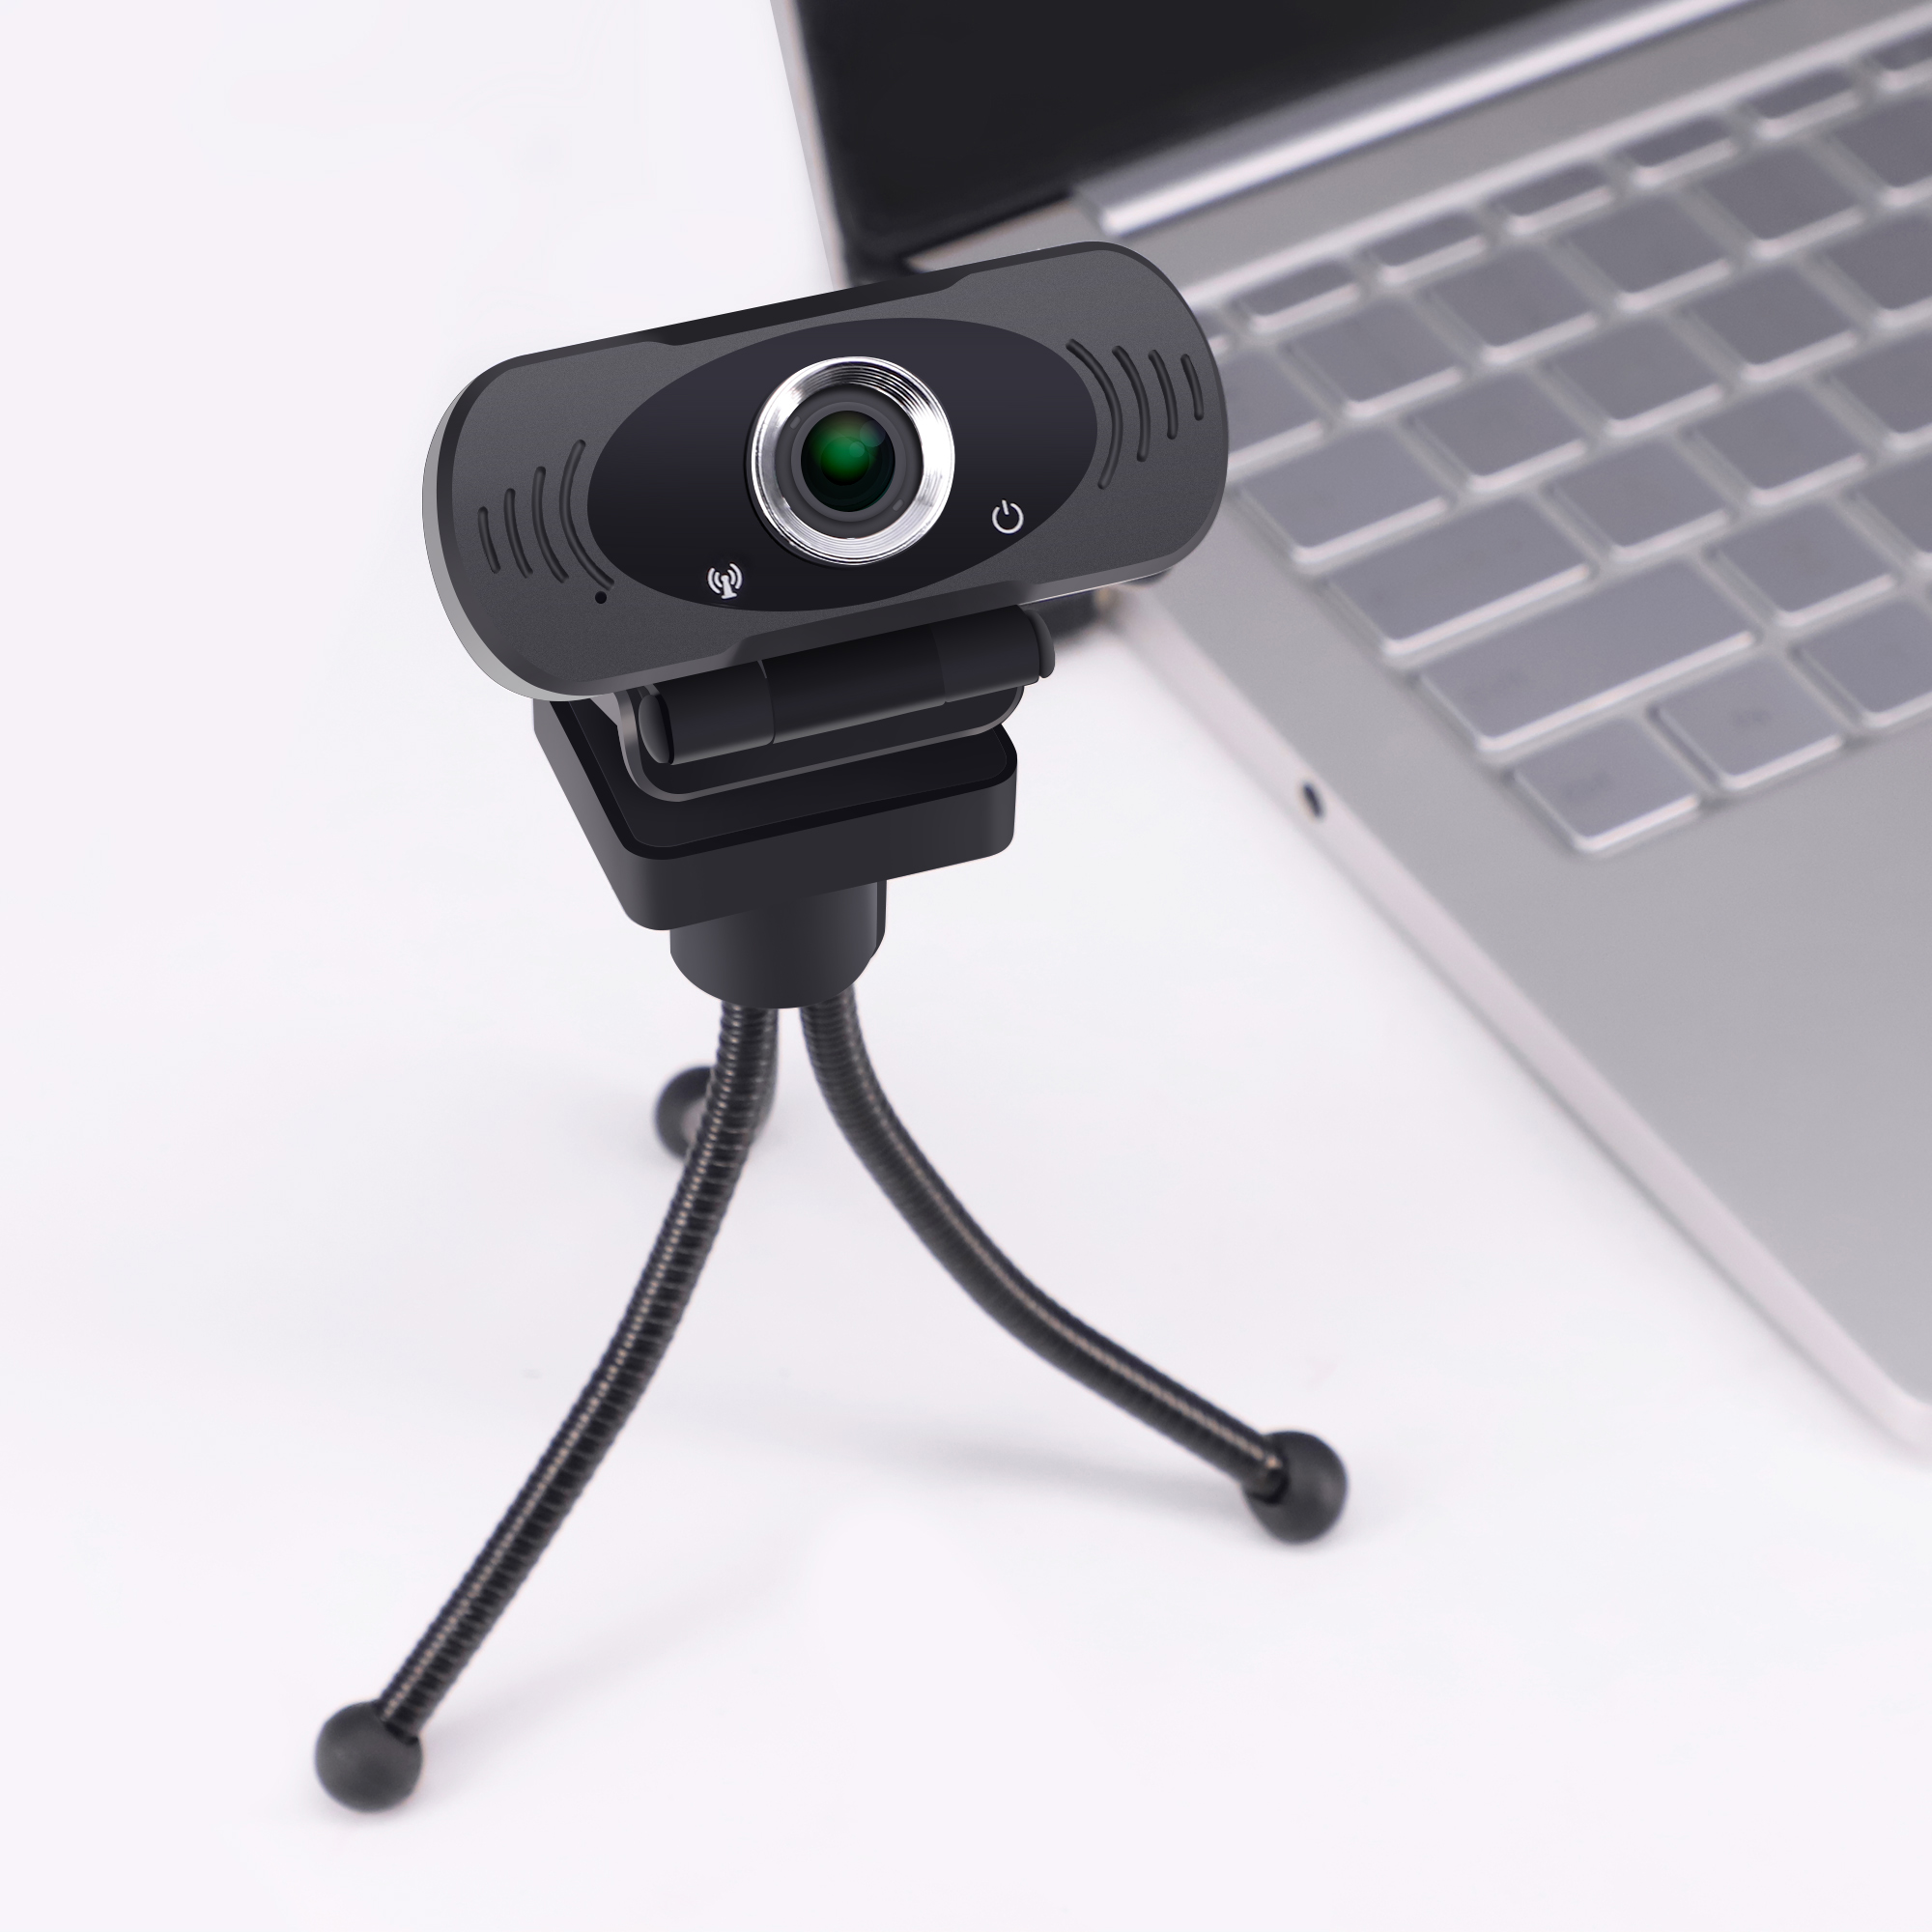 Full HD 1080P Webcam with privacy filter and tripod, Plug & Play USB WebCam 1080P HD with Microphone